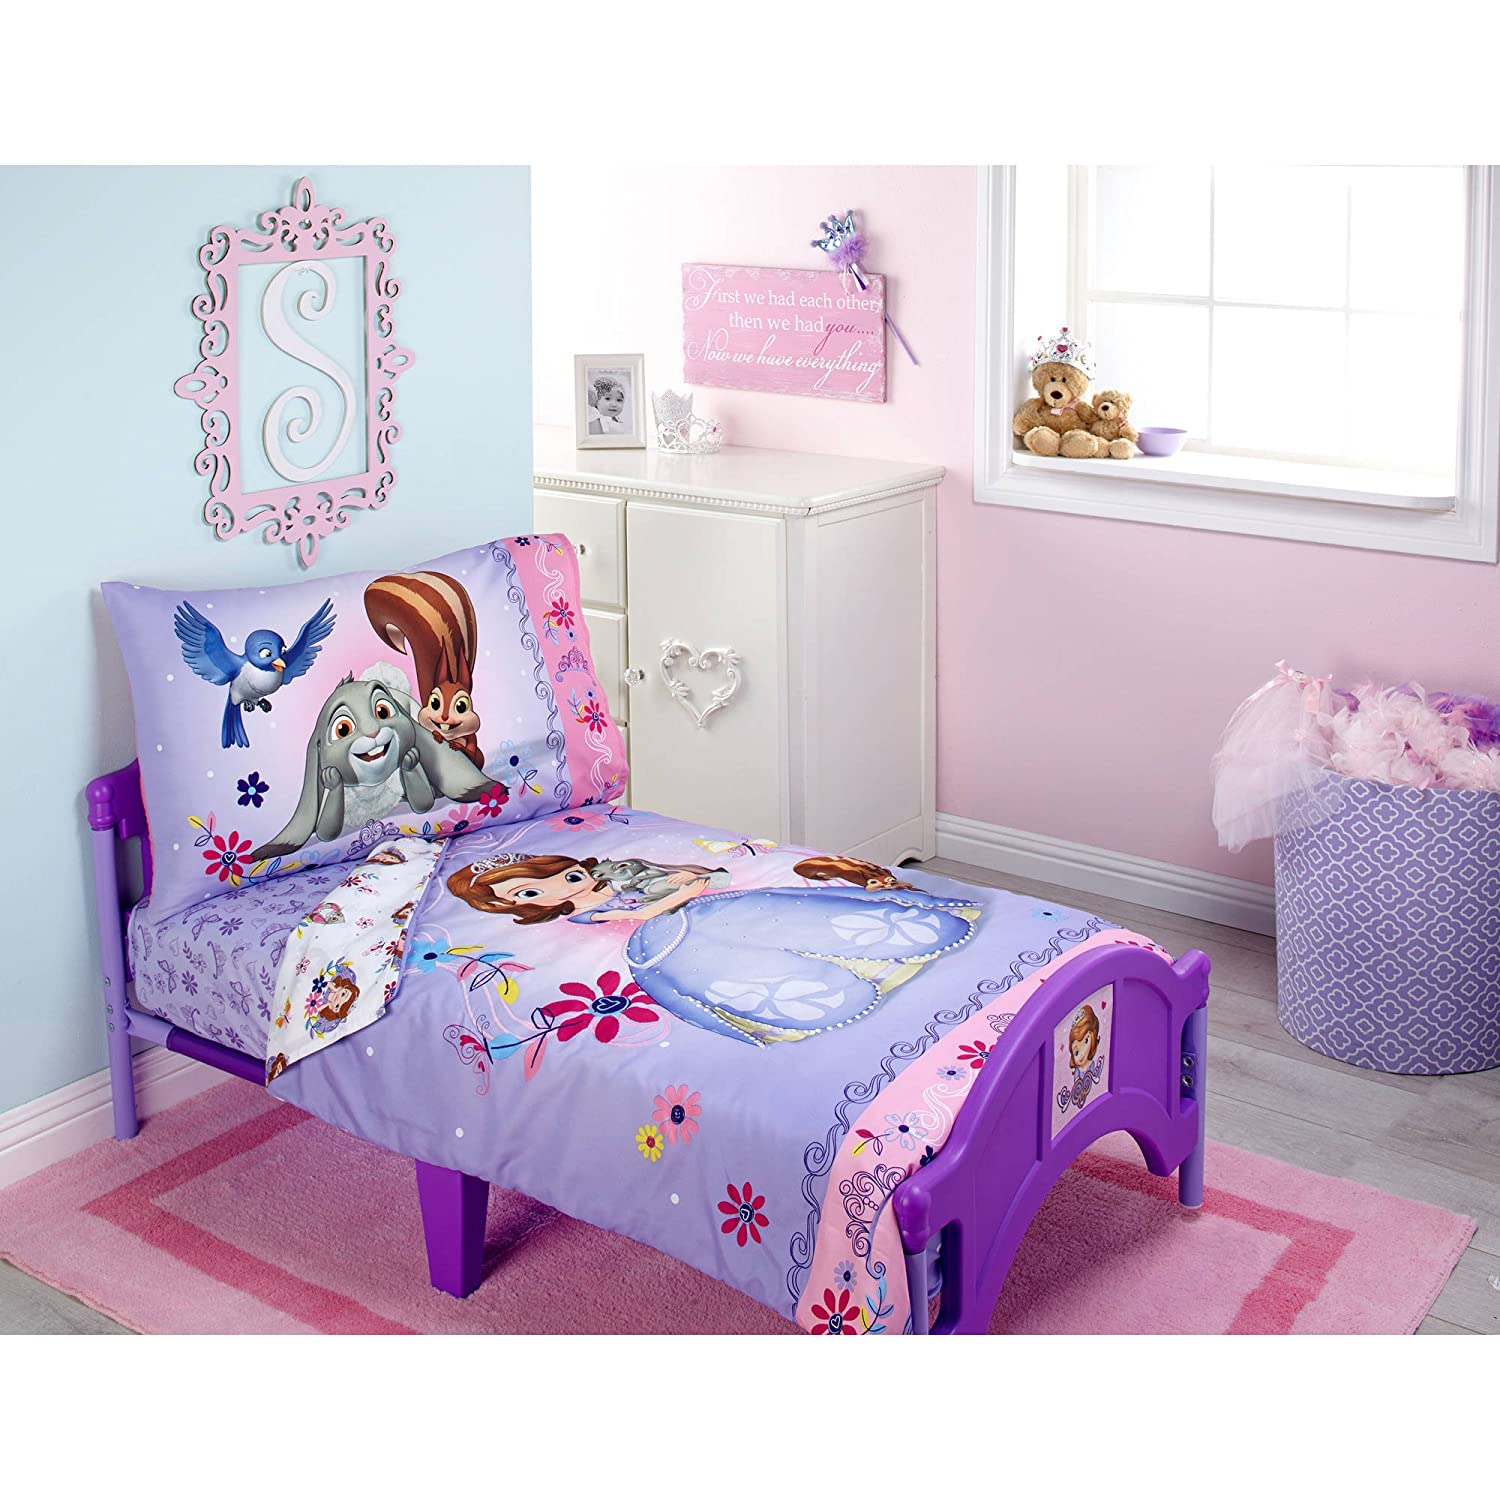 Sofia Friends are Magic 4-Piece Toddler Bedding Set by Disney